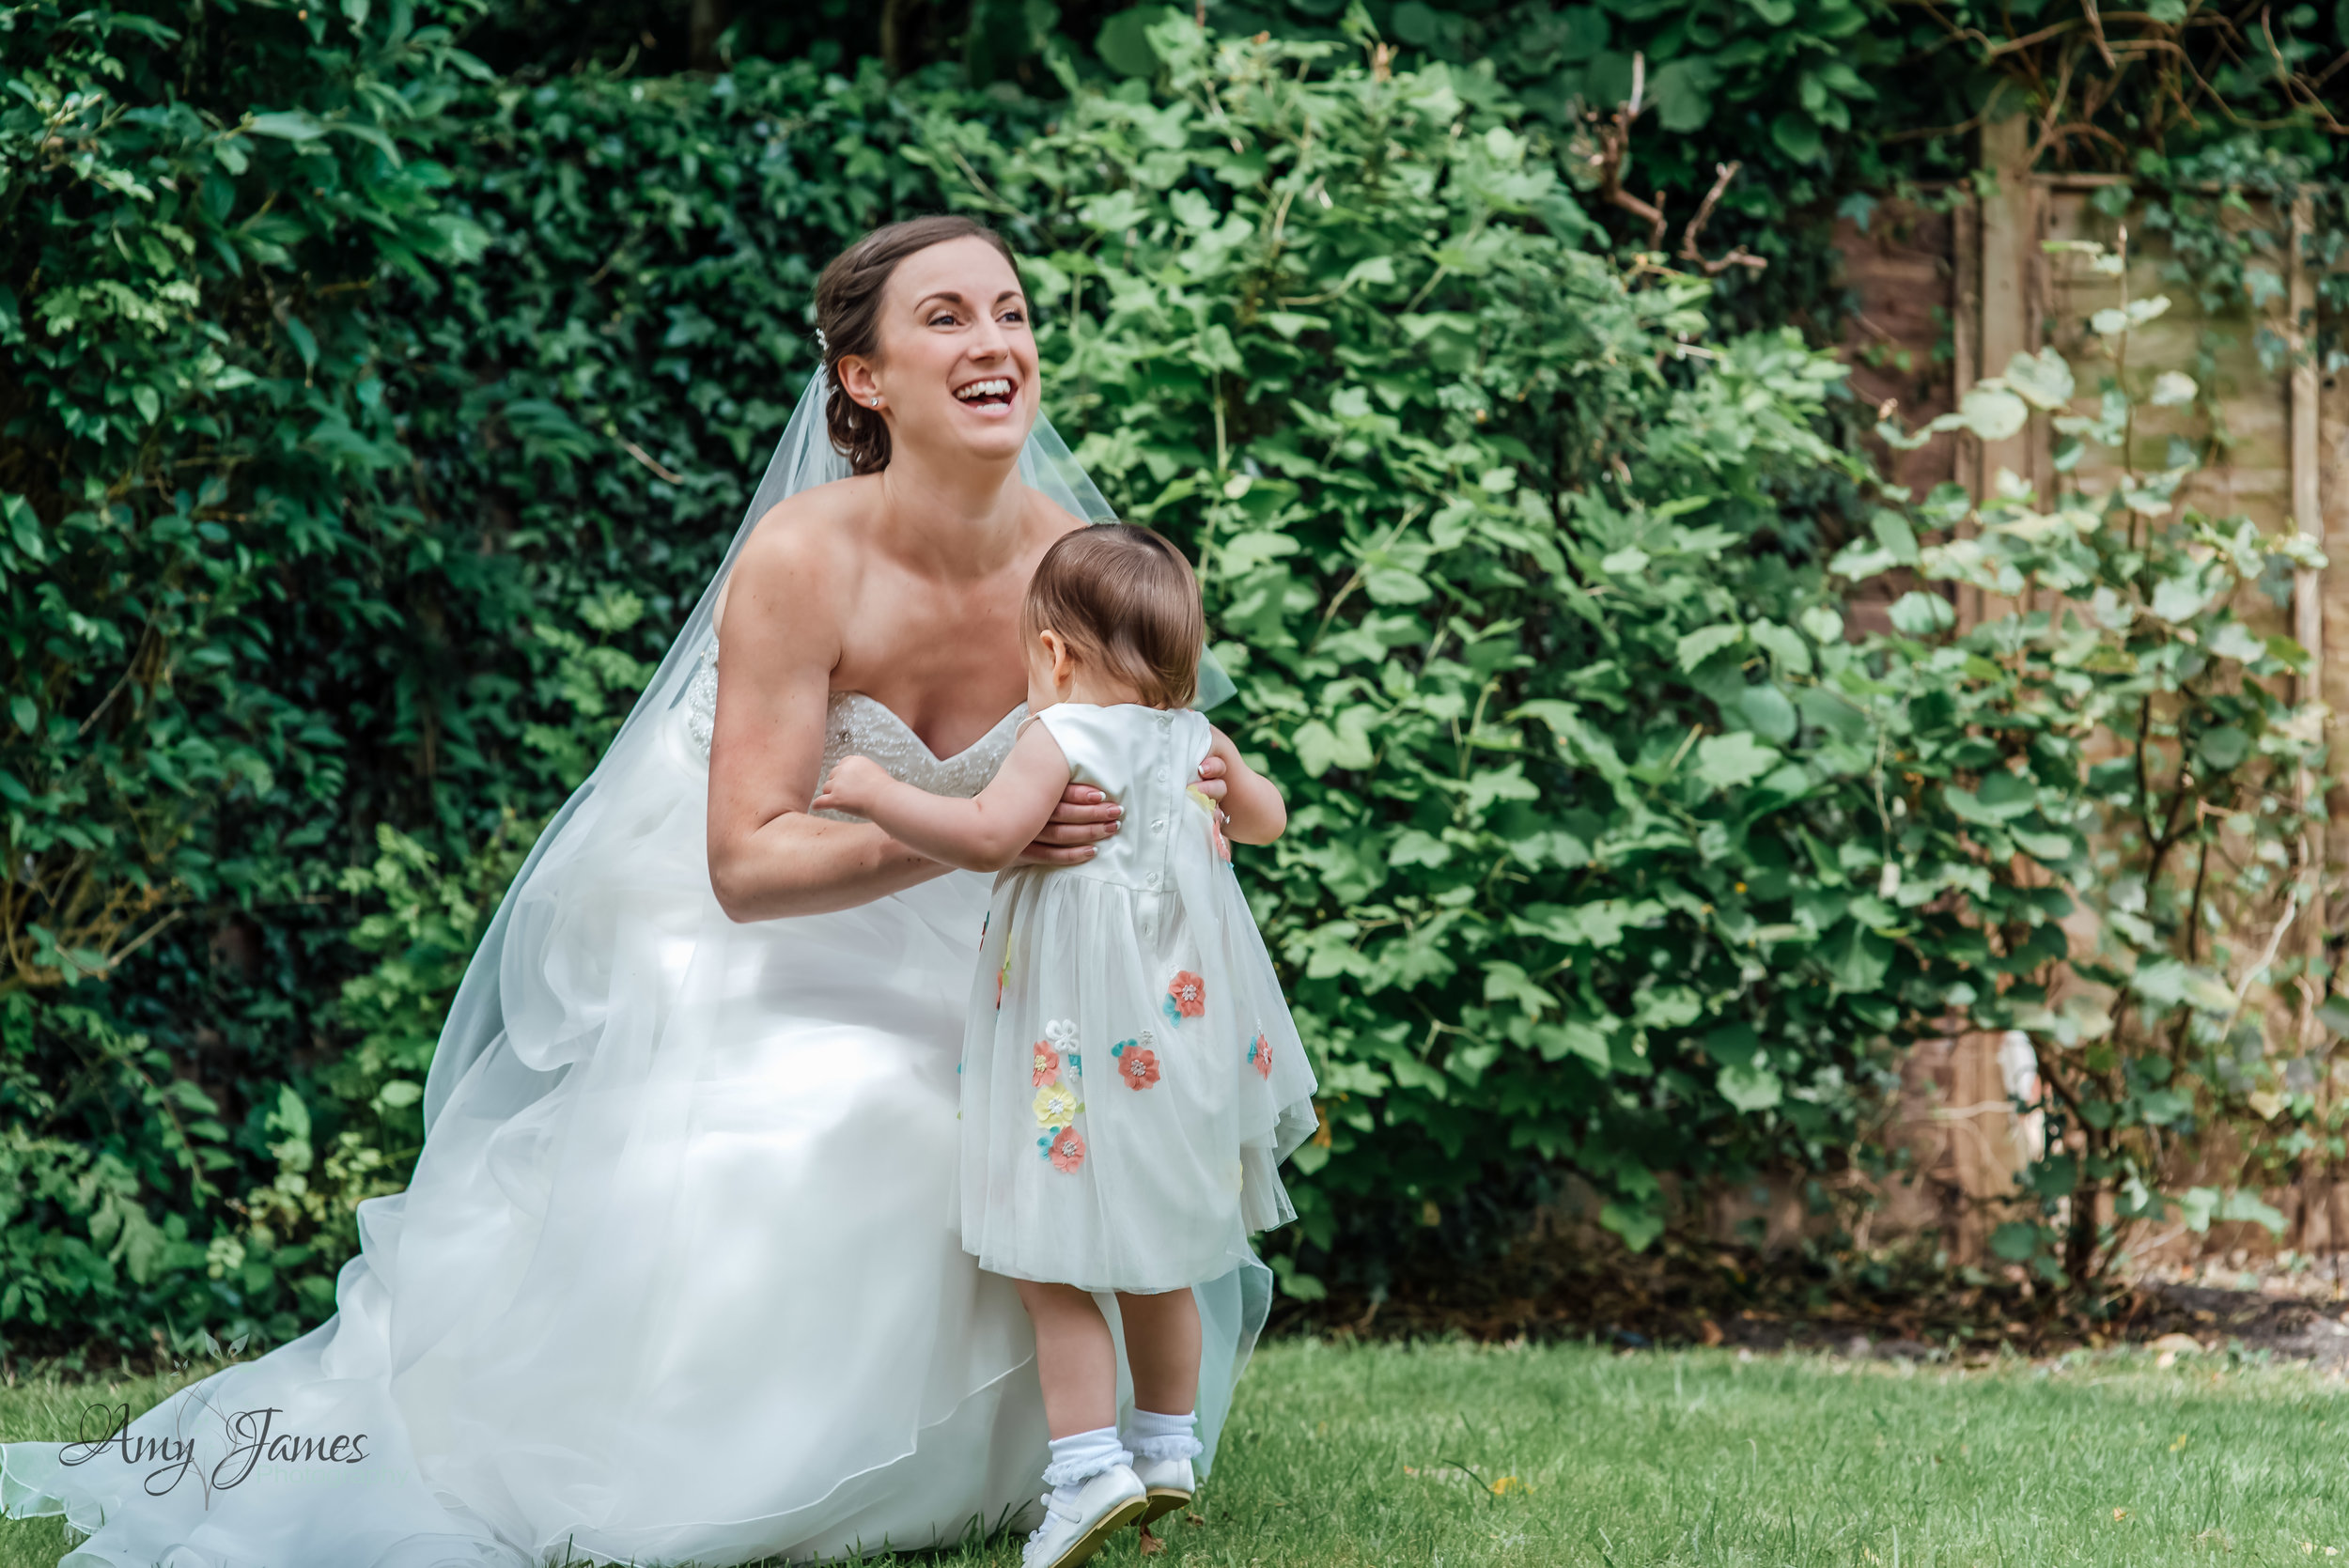 Bride throwing flower girl into the air